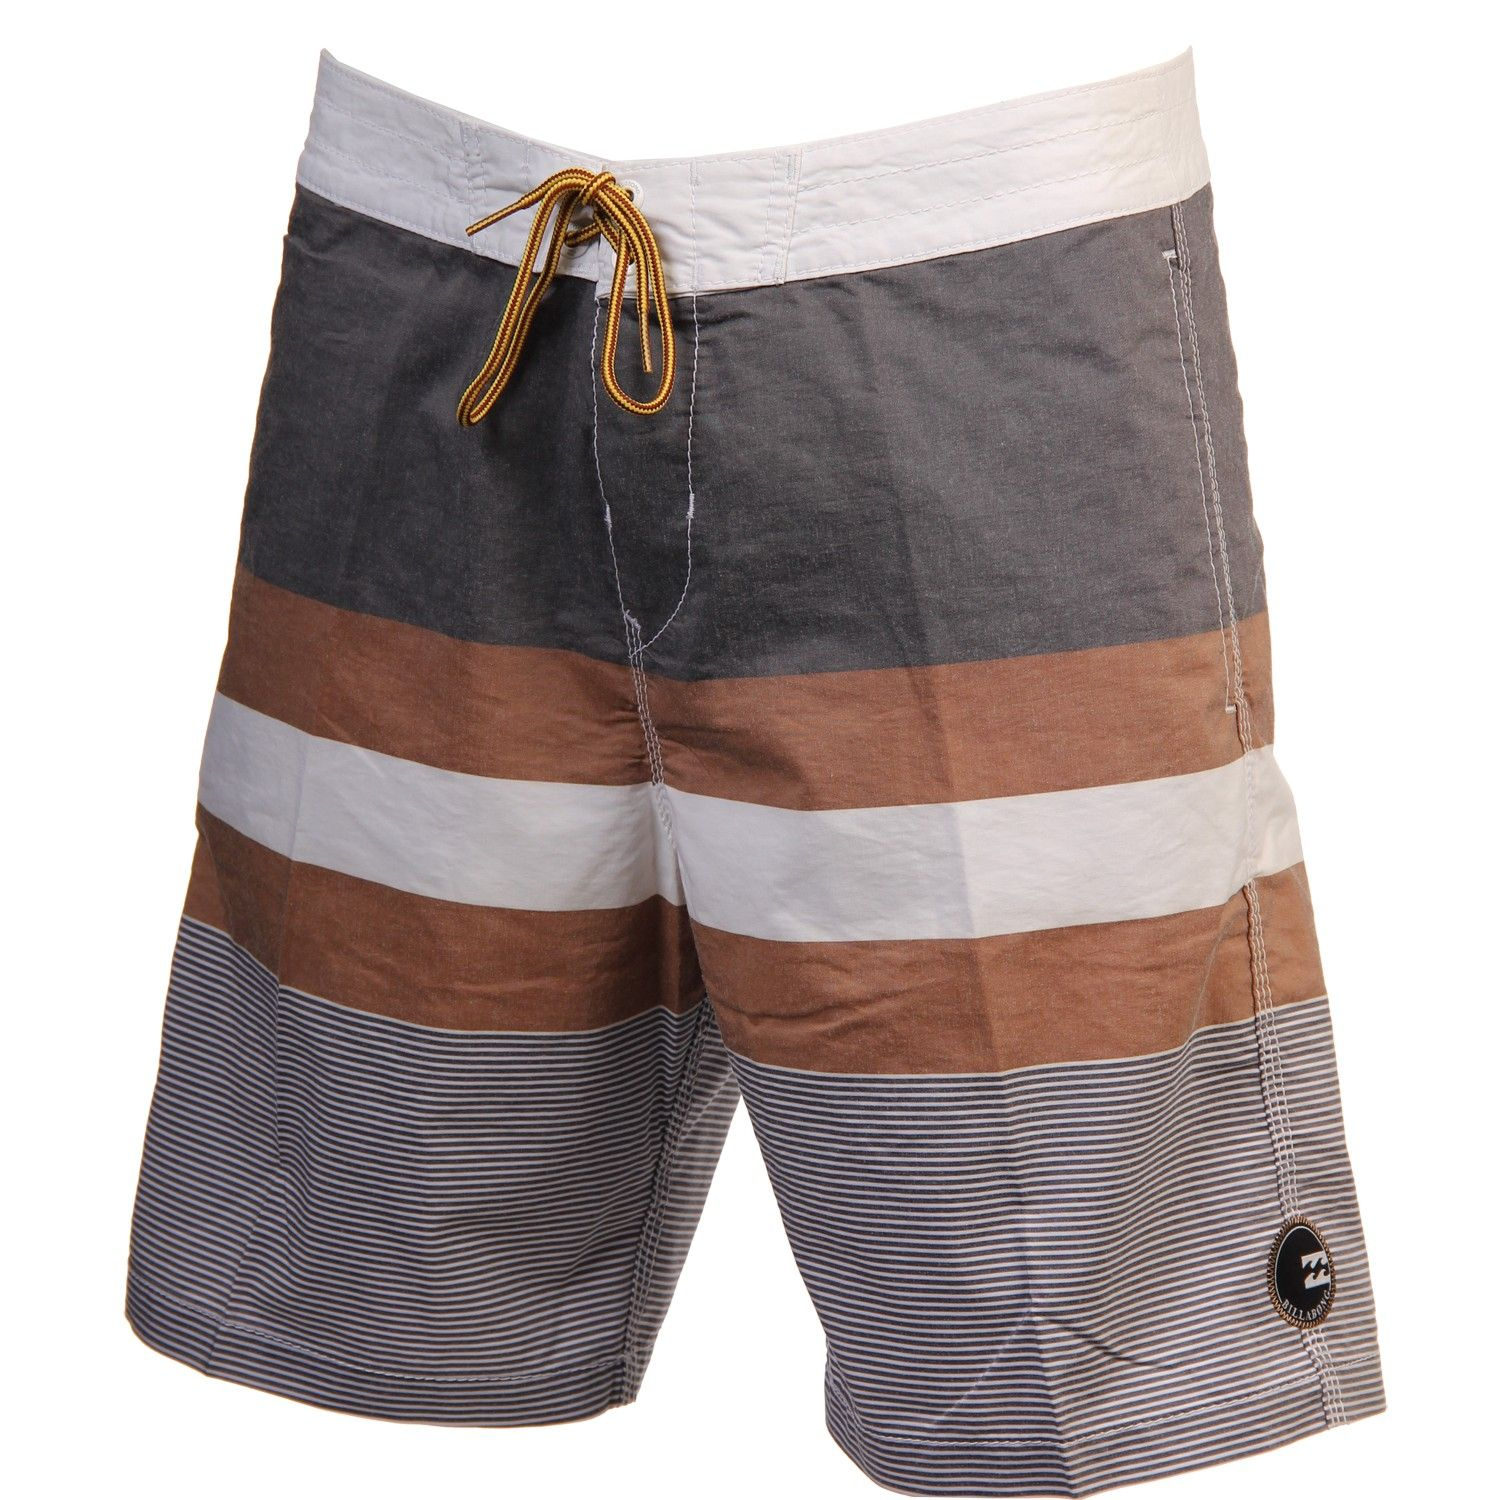 39095838ef7b5 Billabong Mens Boardshorts Spinner Black | New Mens Product | Mens ...